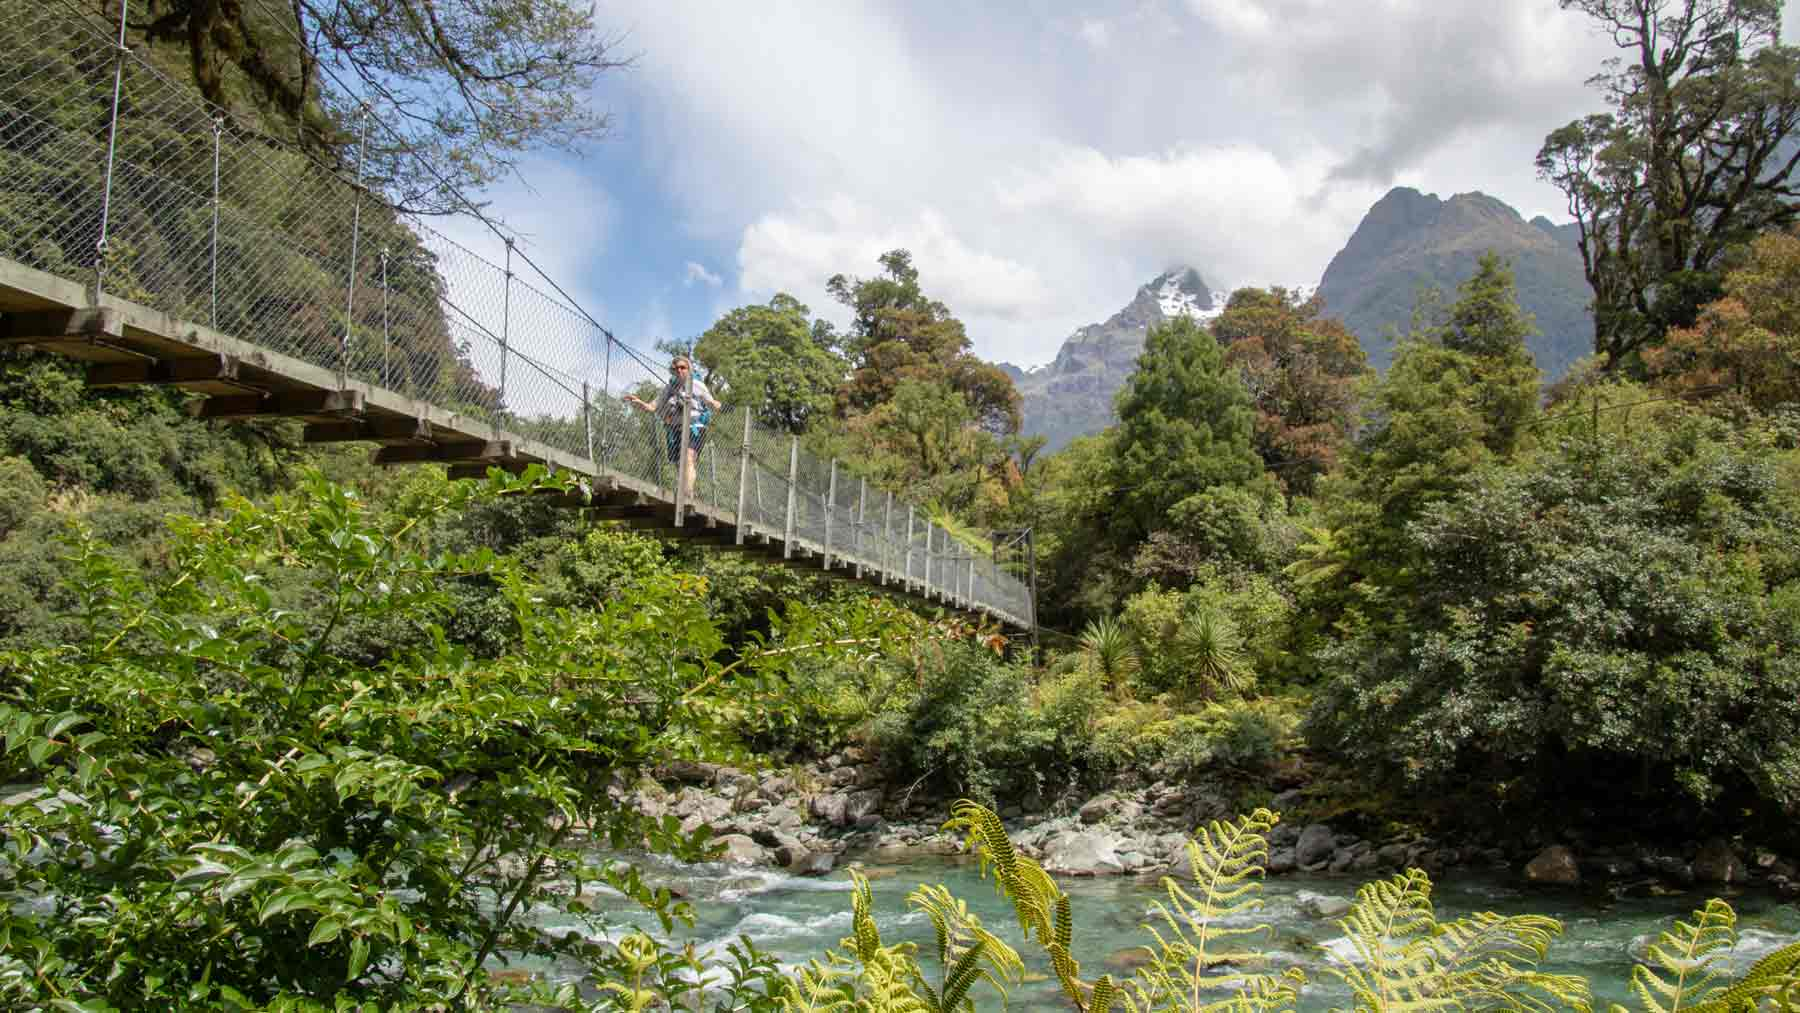 One of many swing bridges on the Hollyford Track.  The Asmuss founders sister is crossing the swing bridge wearing Asmuss luxury travel clothing designs, Hollyford Track, Fiordland, New Zealand